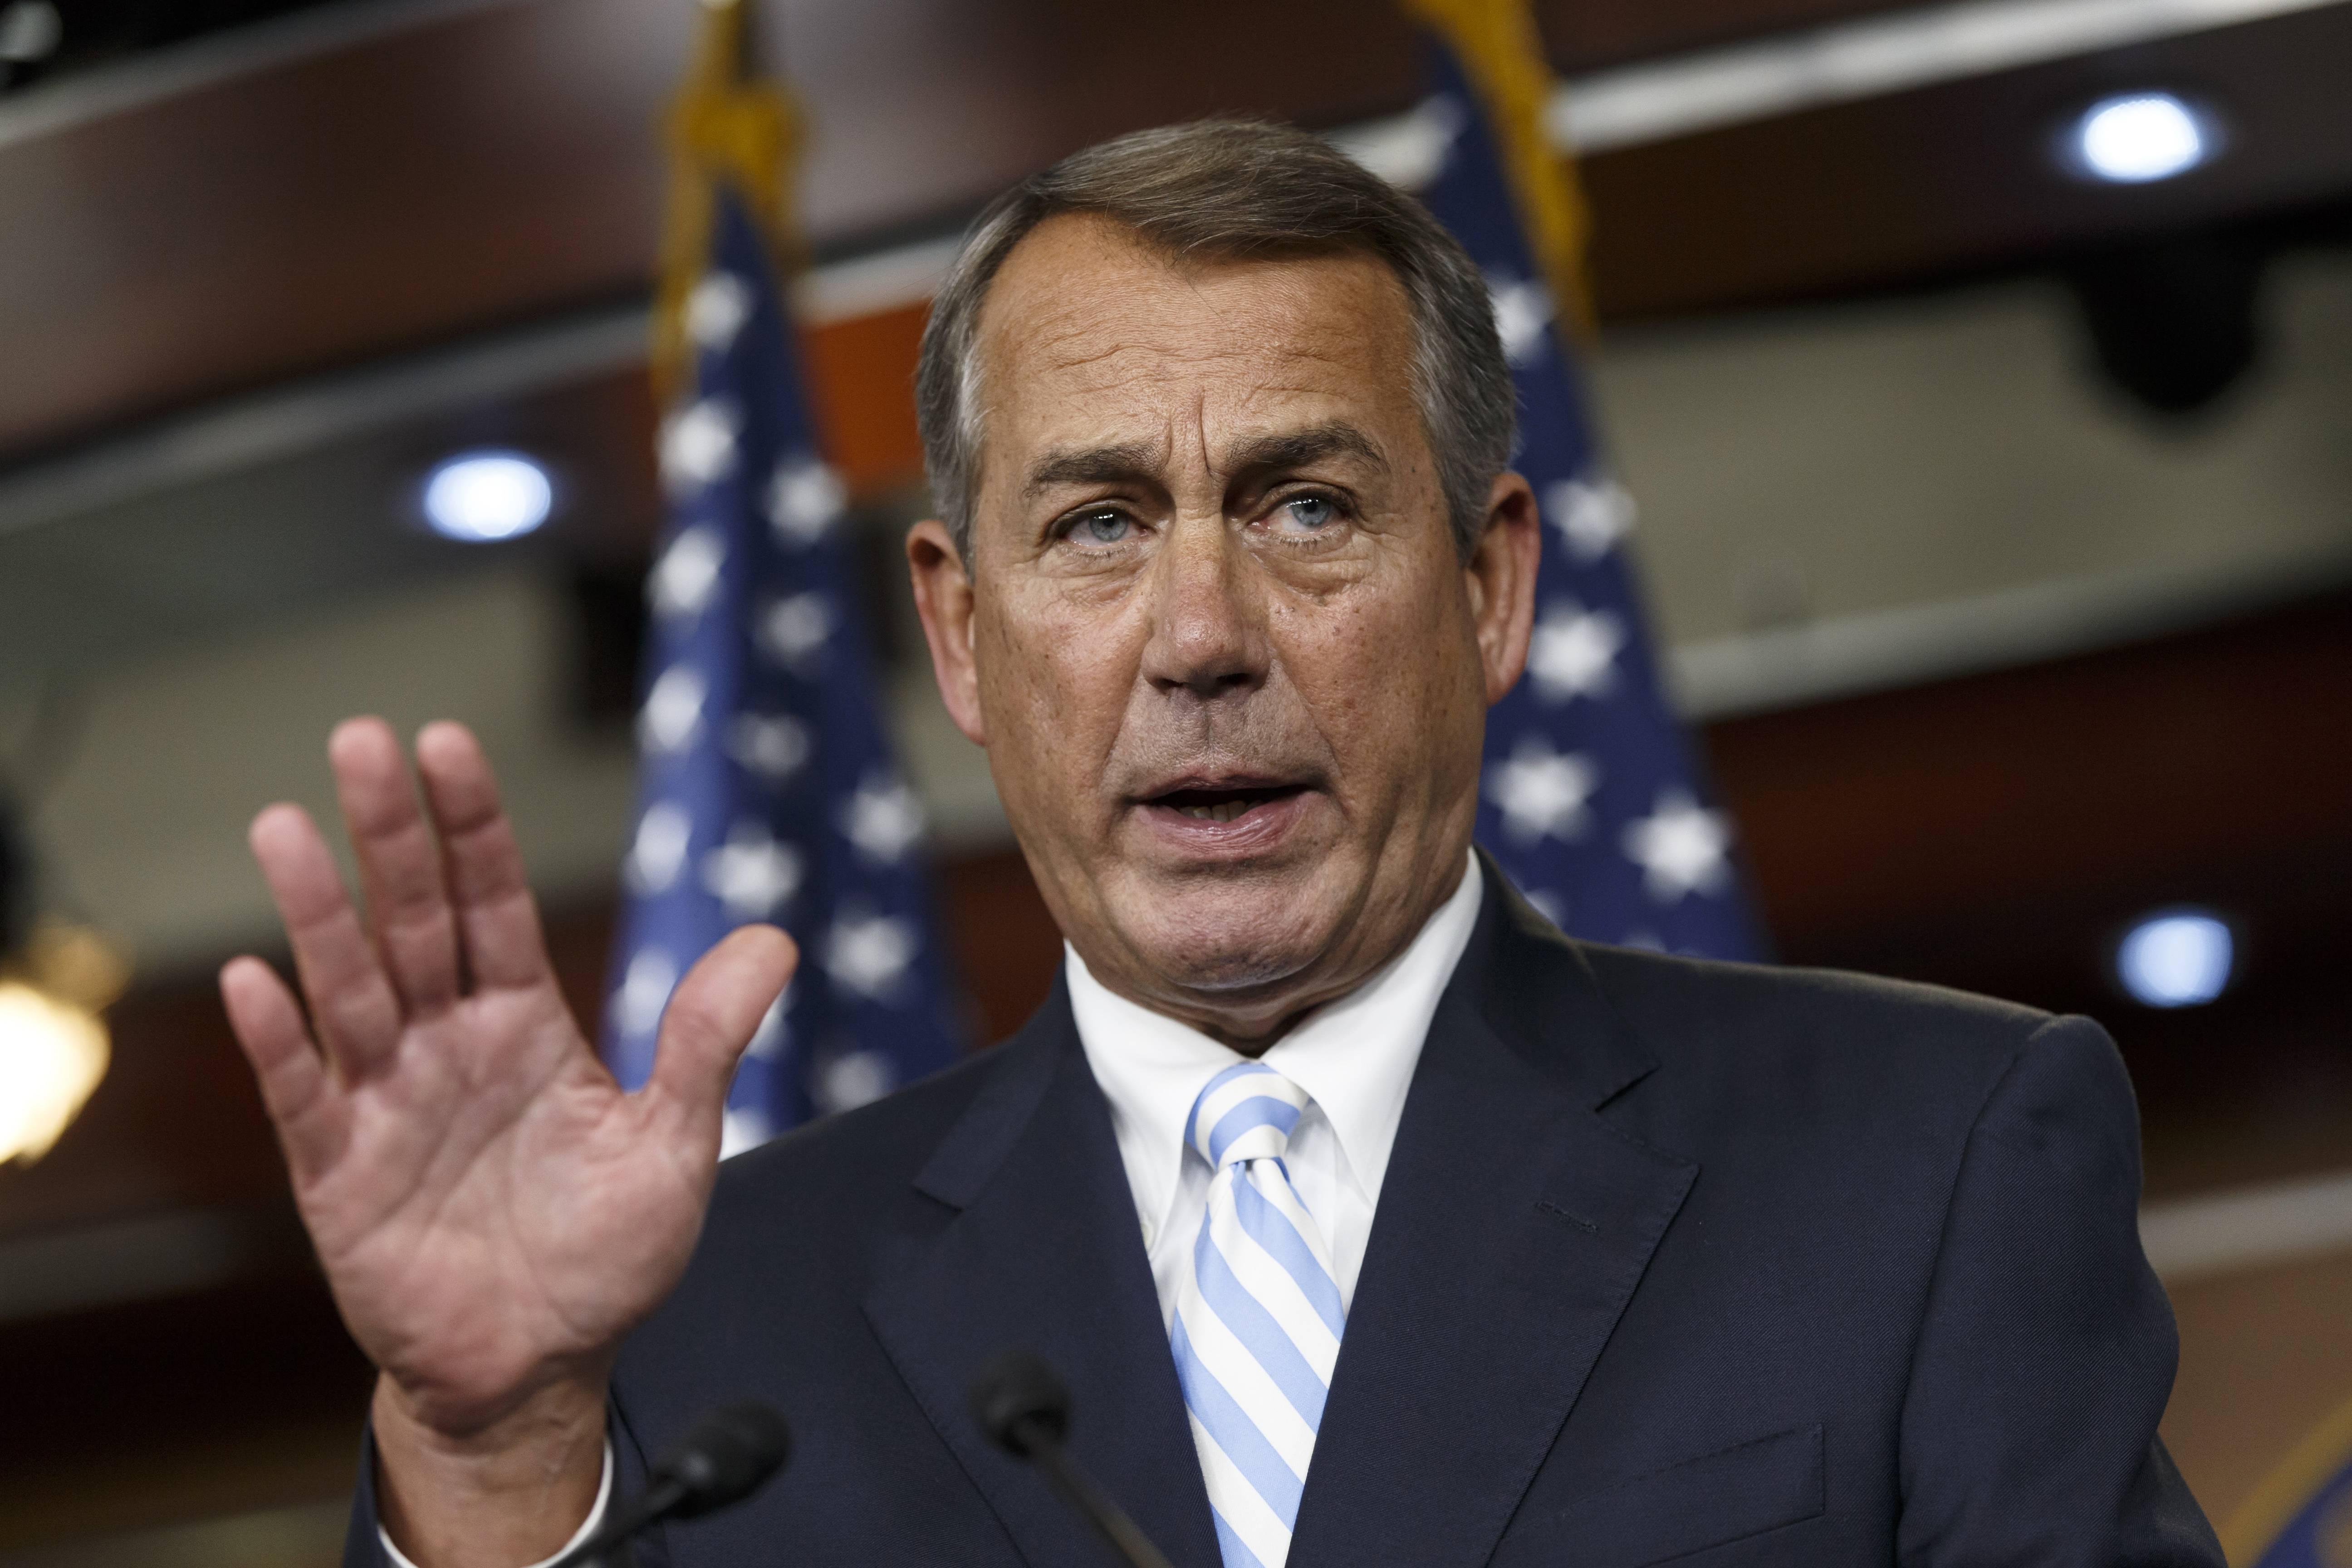 House Speaker John Boehner leads a Republican-majority House that has often been gridlocked with the Democratic-controlled Senate and White House. Congress, still having major unresolved issues, leaves for a five-week summer vacation this week.